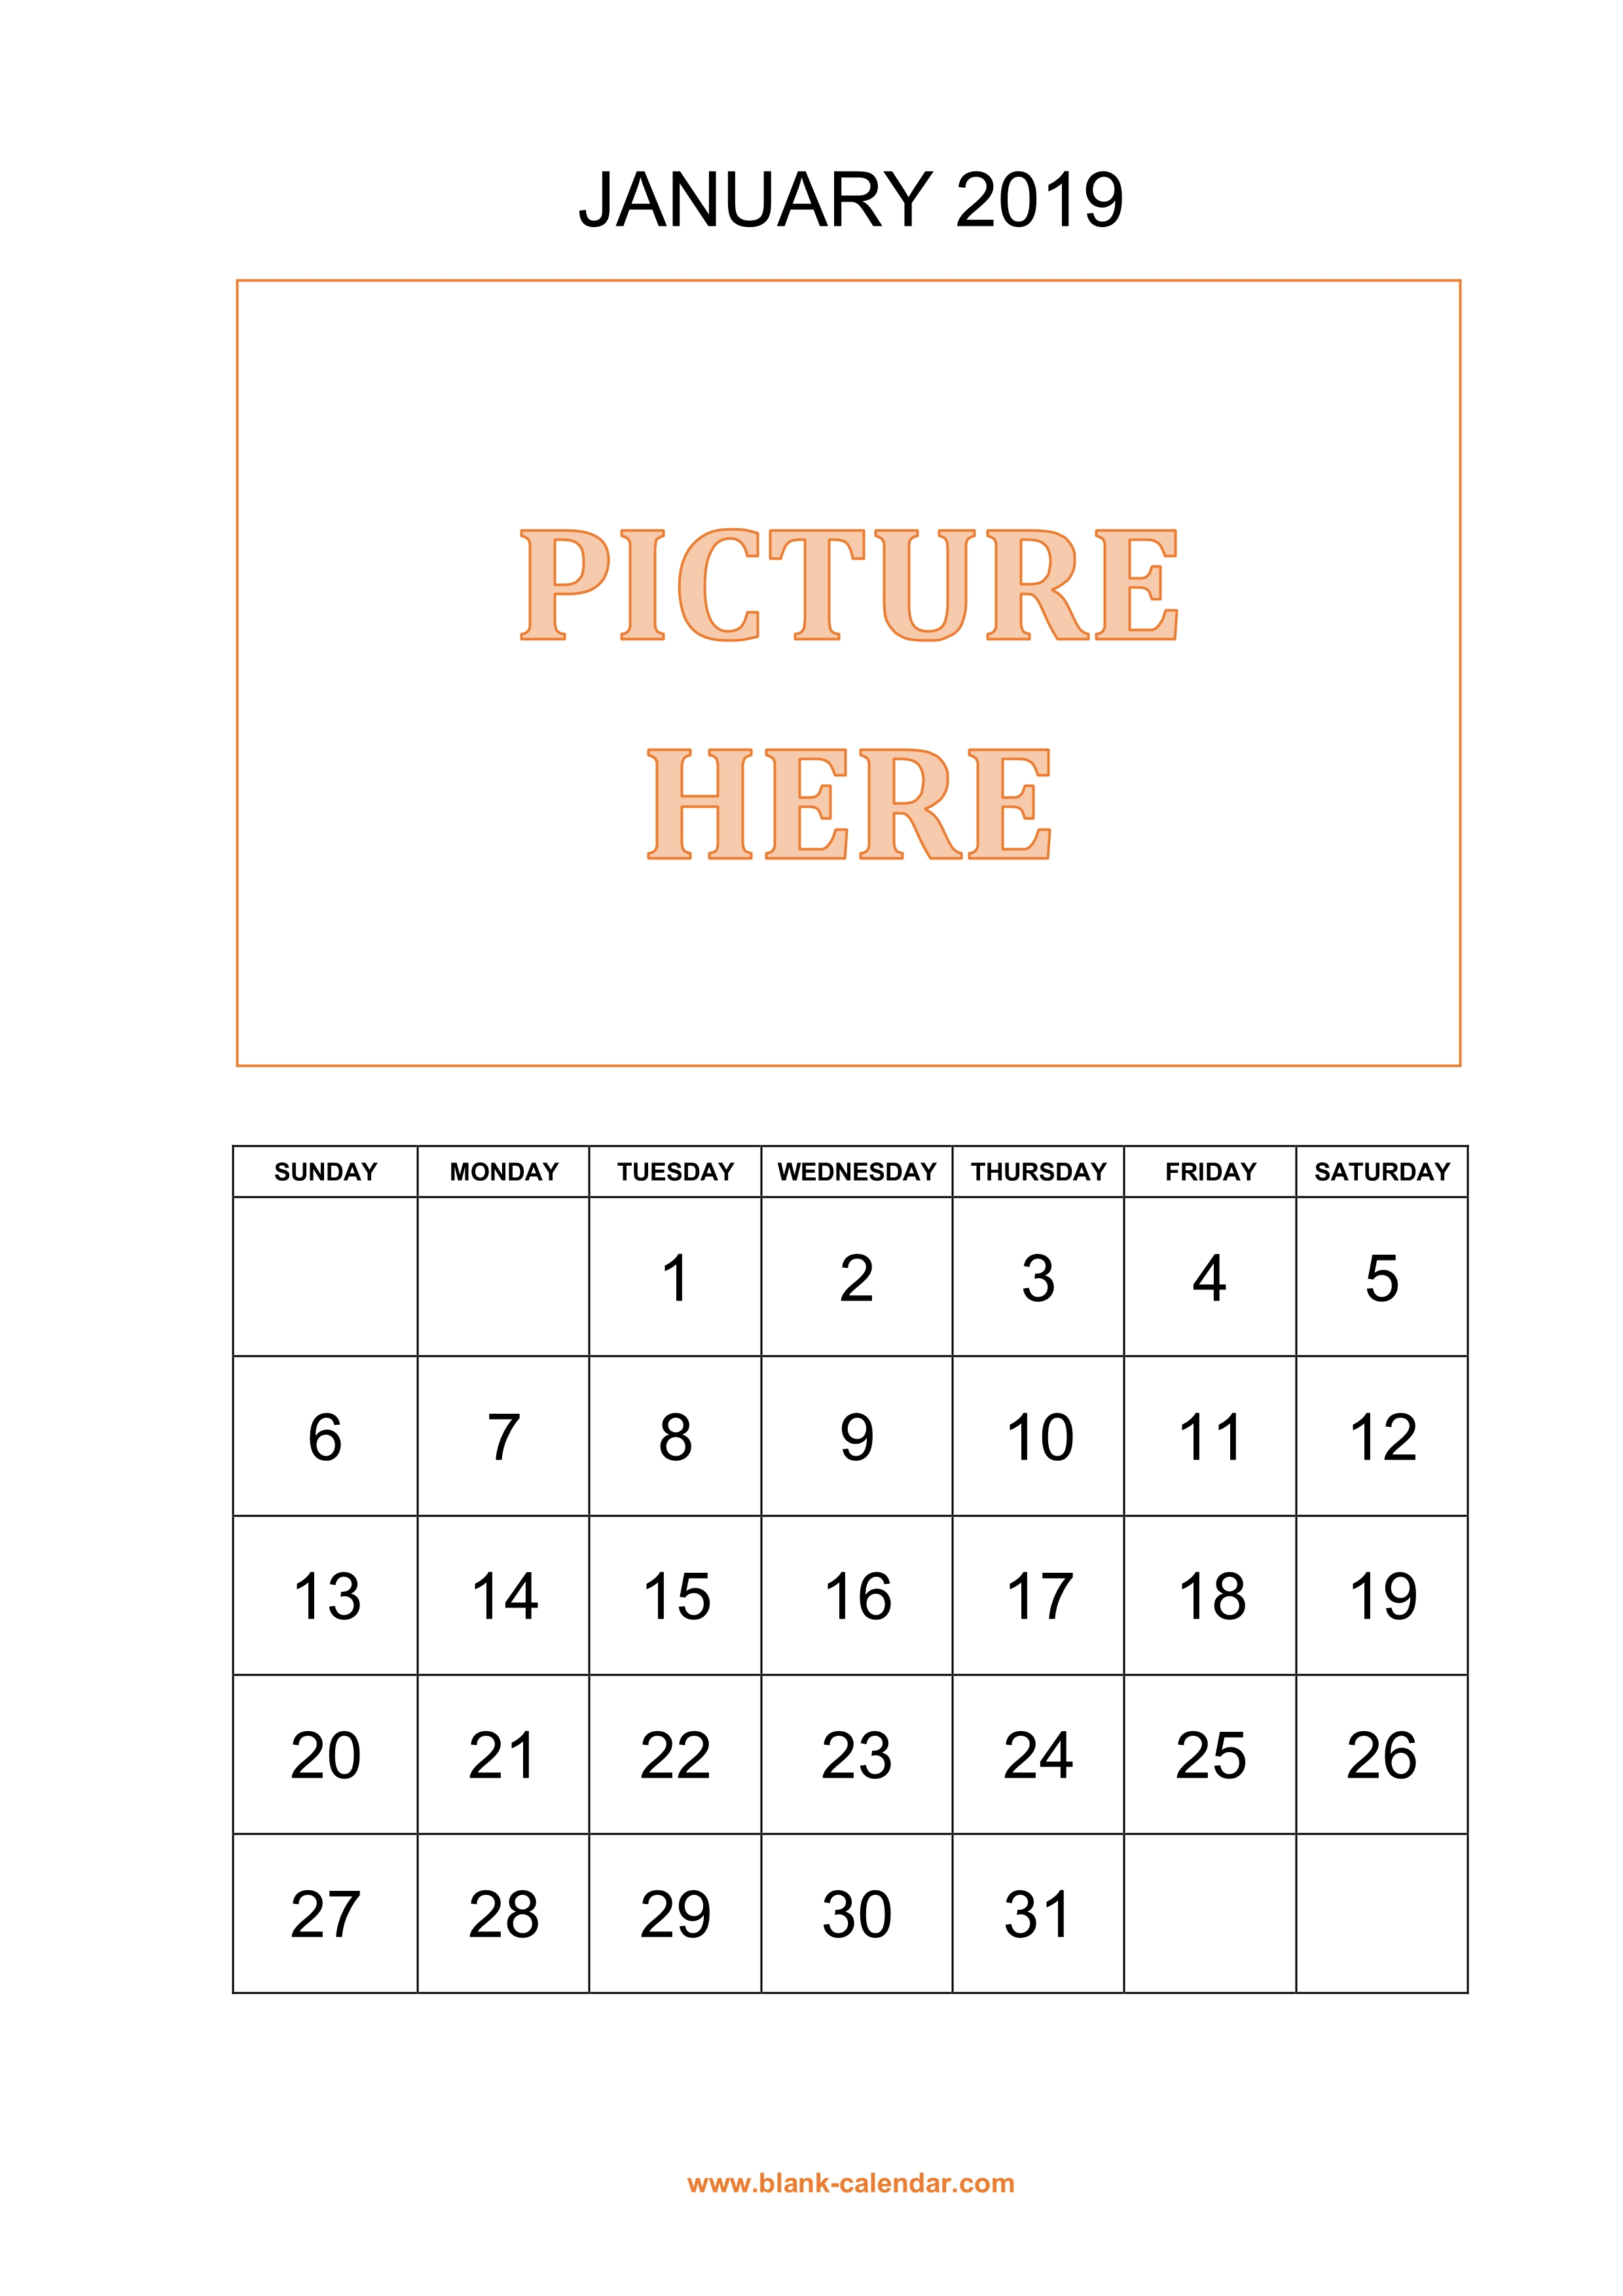 Free Download Printable Calendar 2019 Pictures Can Be Placed At The Top